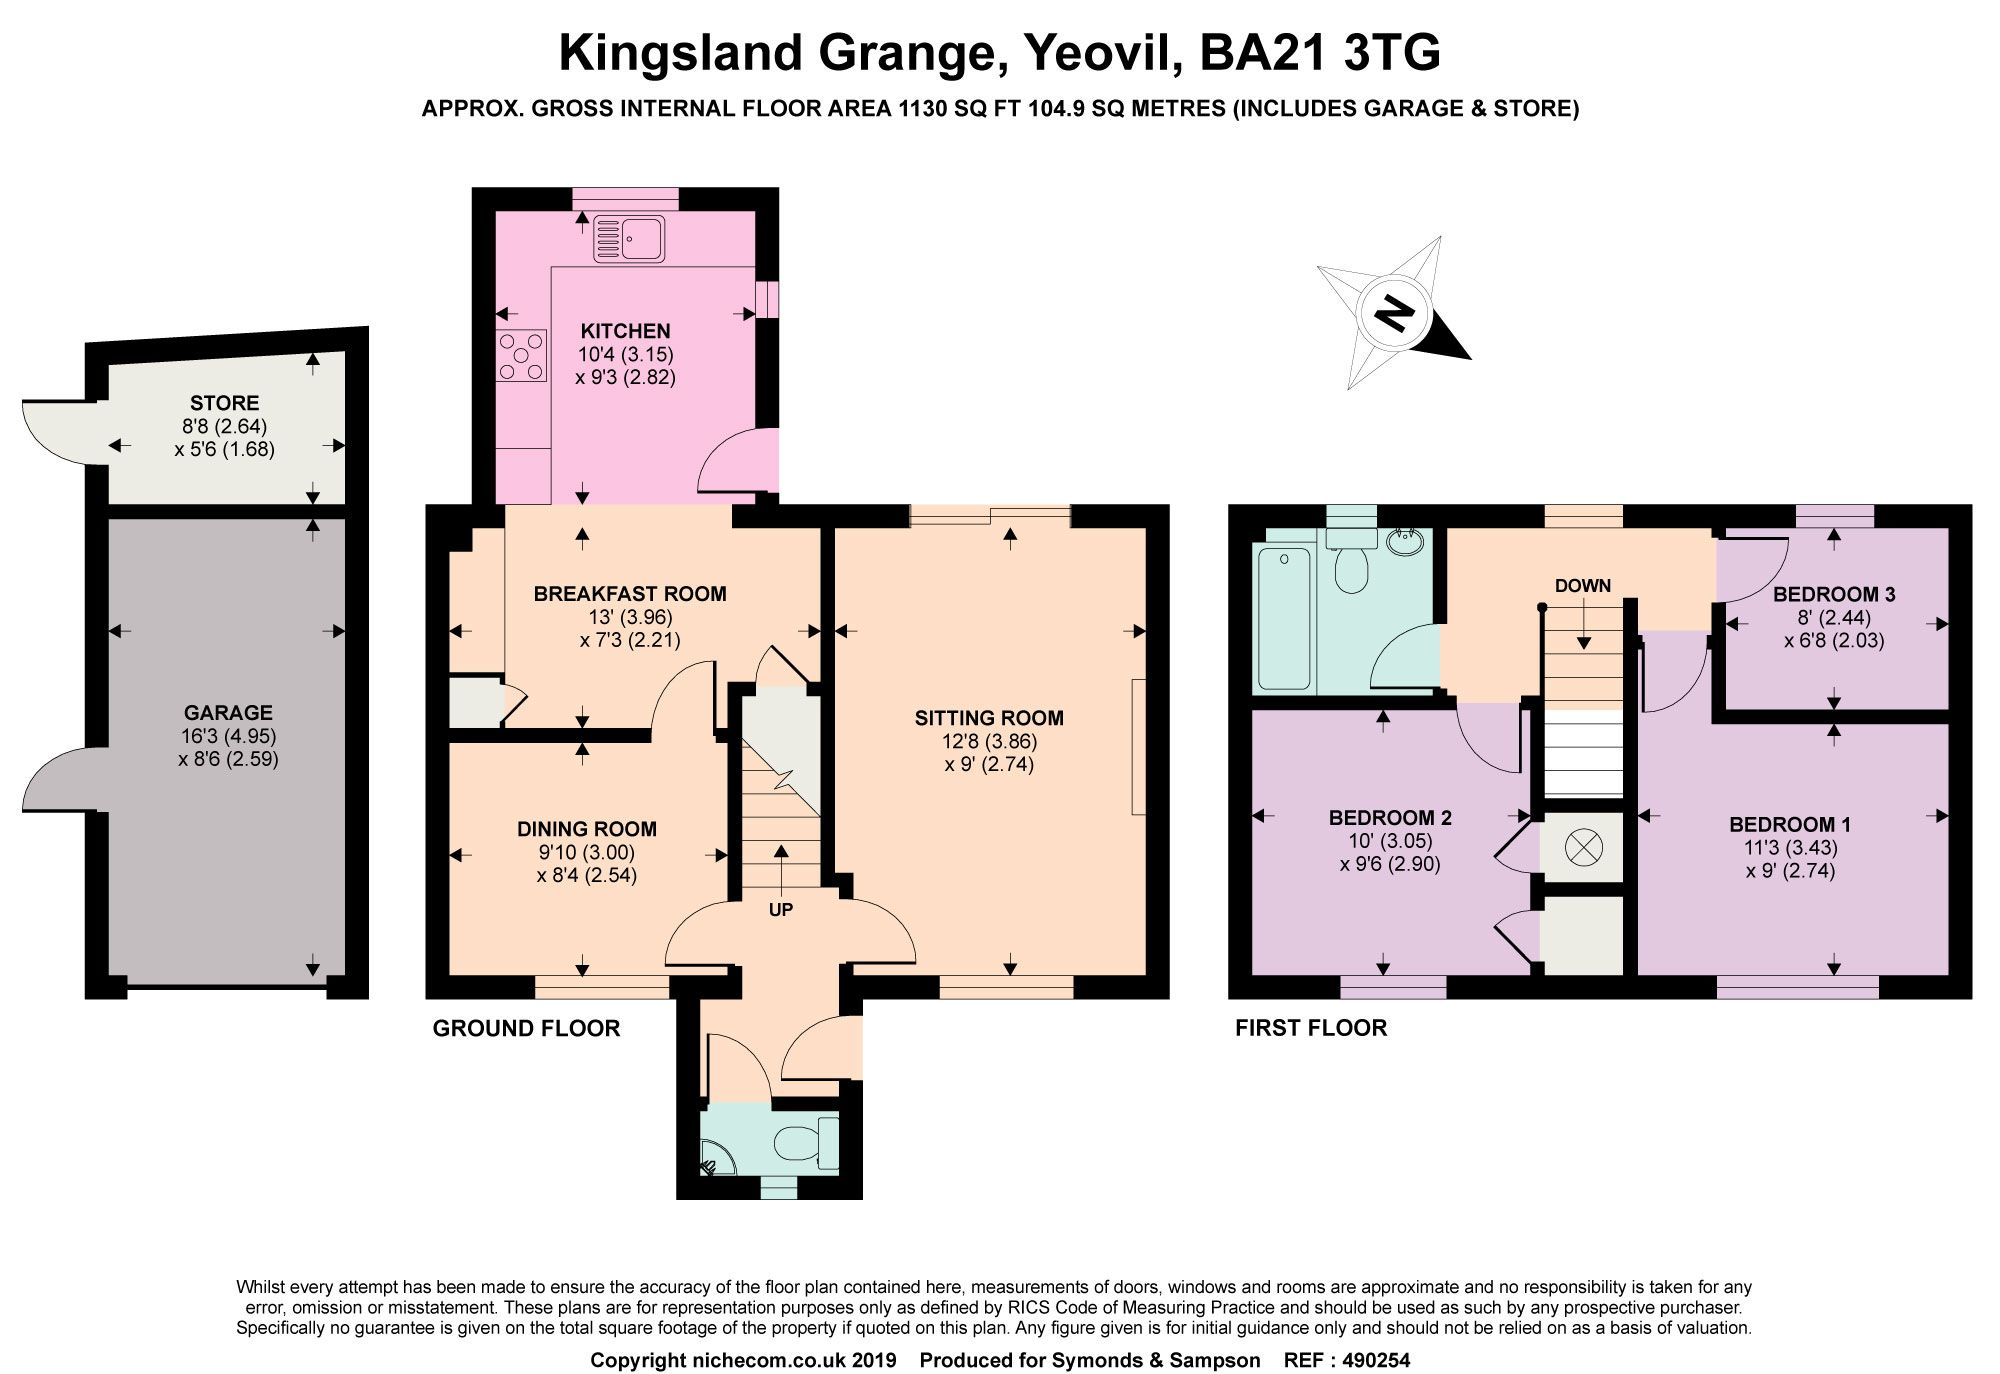 3 Bedrooms Semi-detached house for sale in Kingsland Grange, Yeovil, Somerset BA21